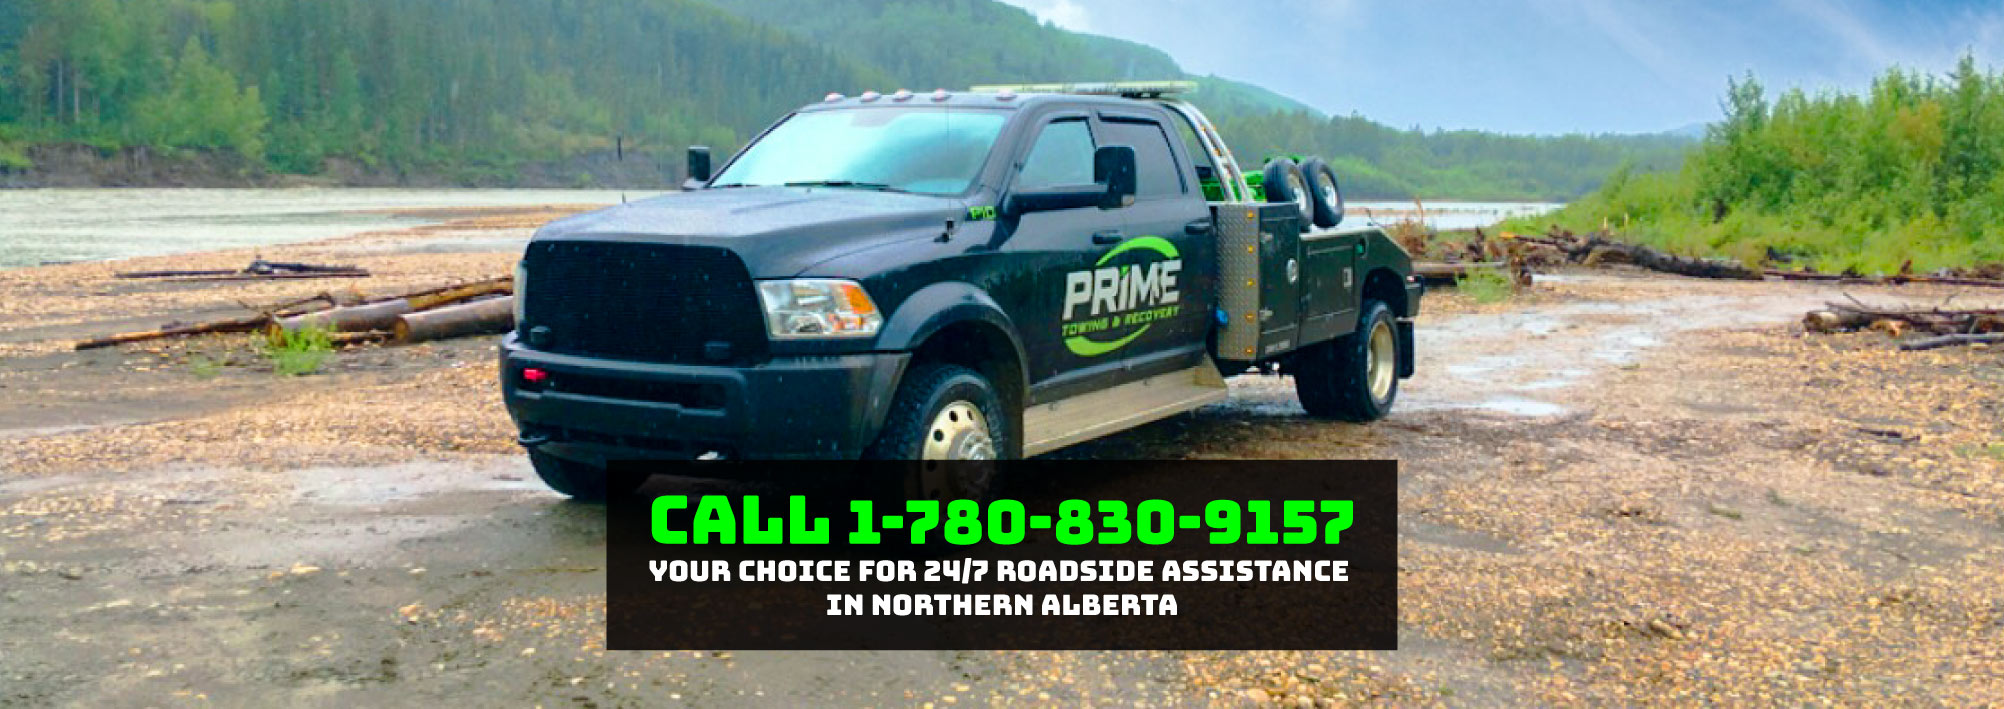 Prime Towing & Recovery - Call 1-780-830-9157 for Help on the Road!